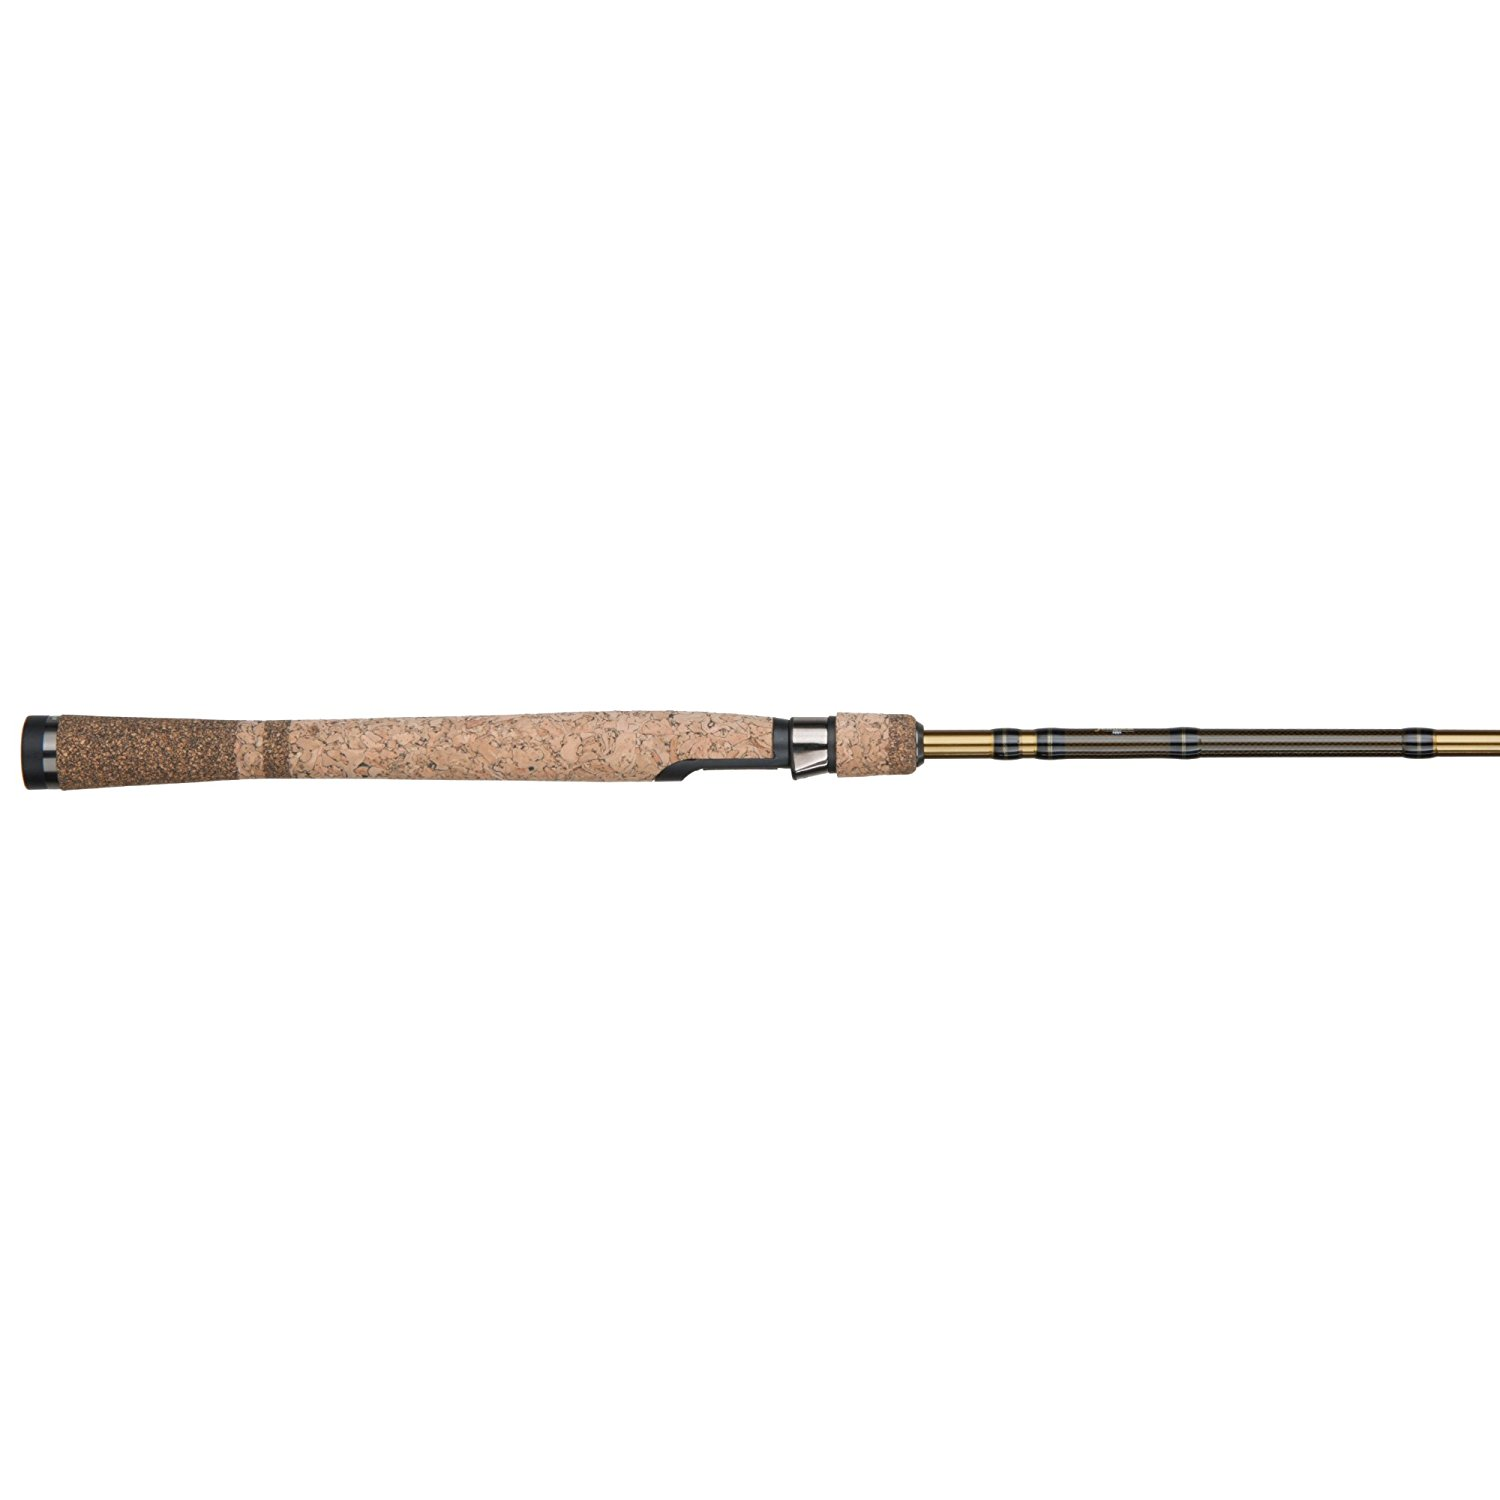 Fenwick Eagle Spinning Rod